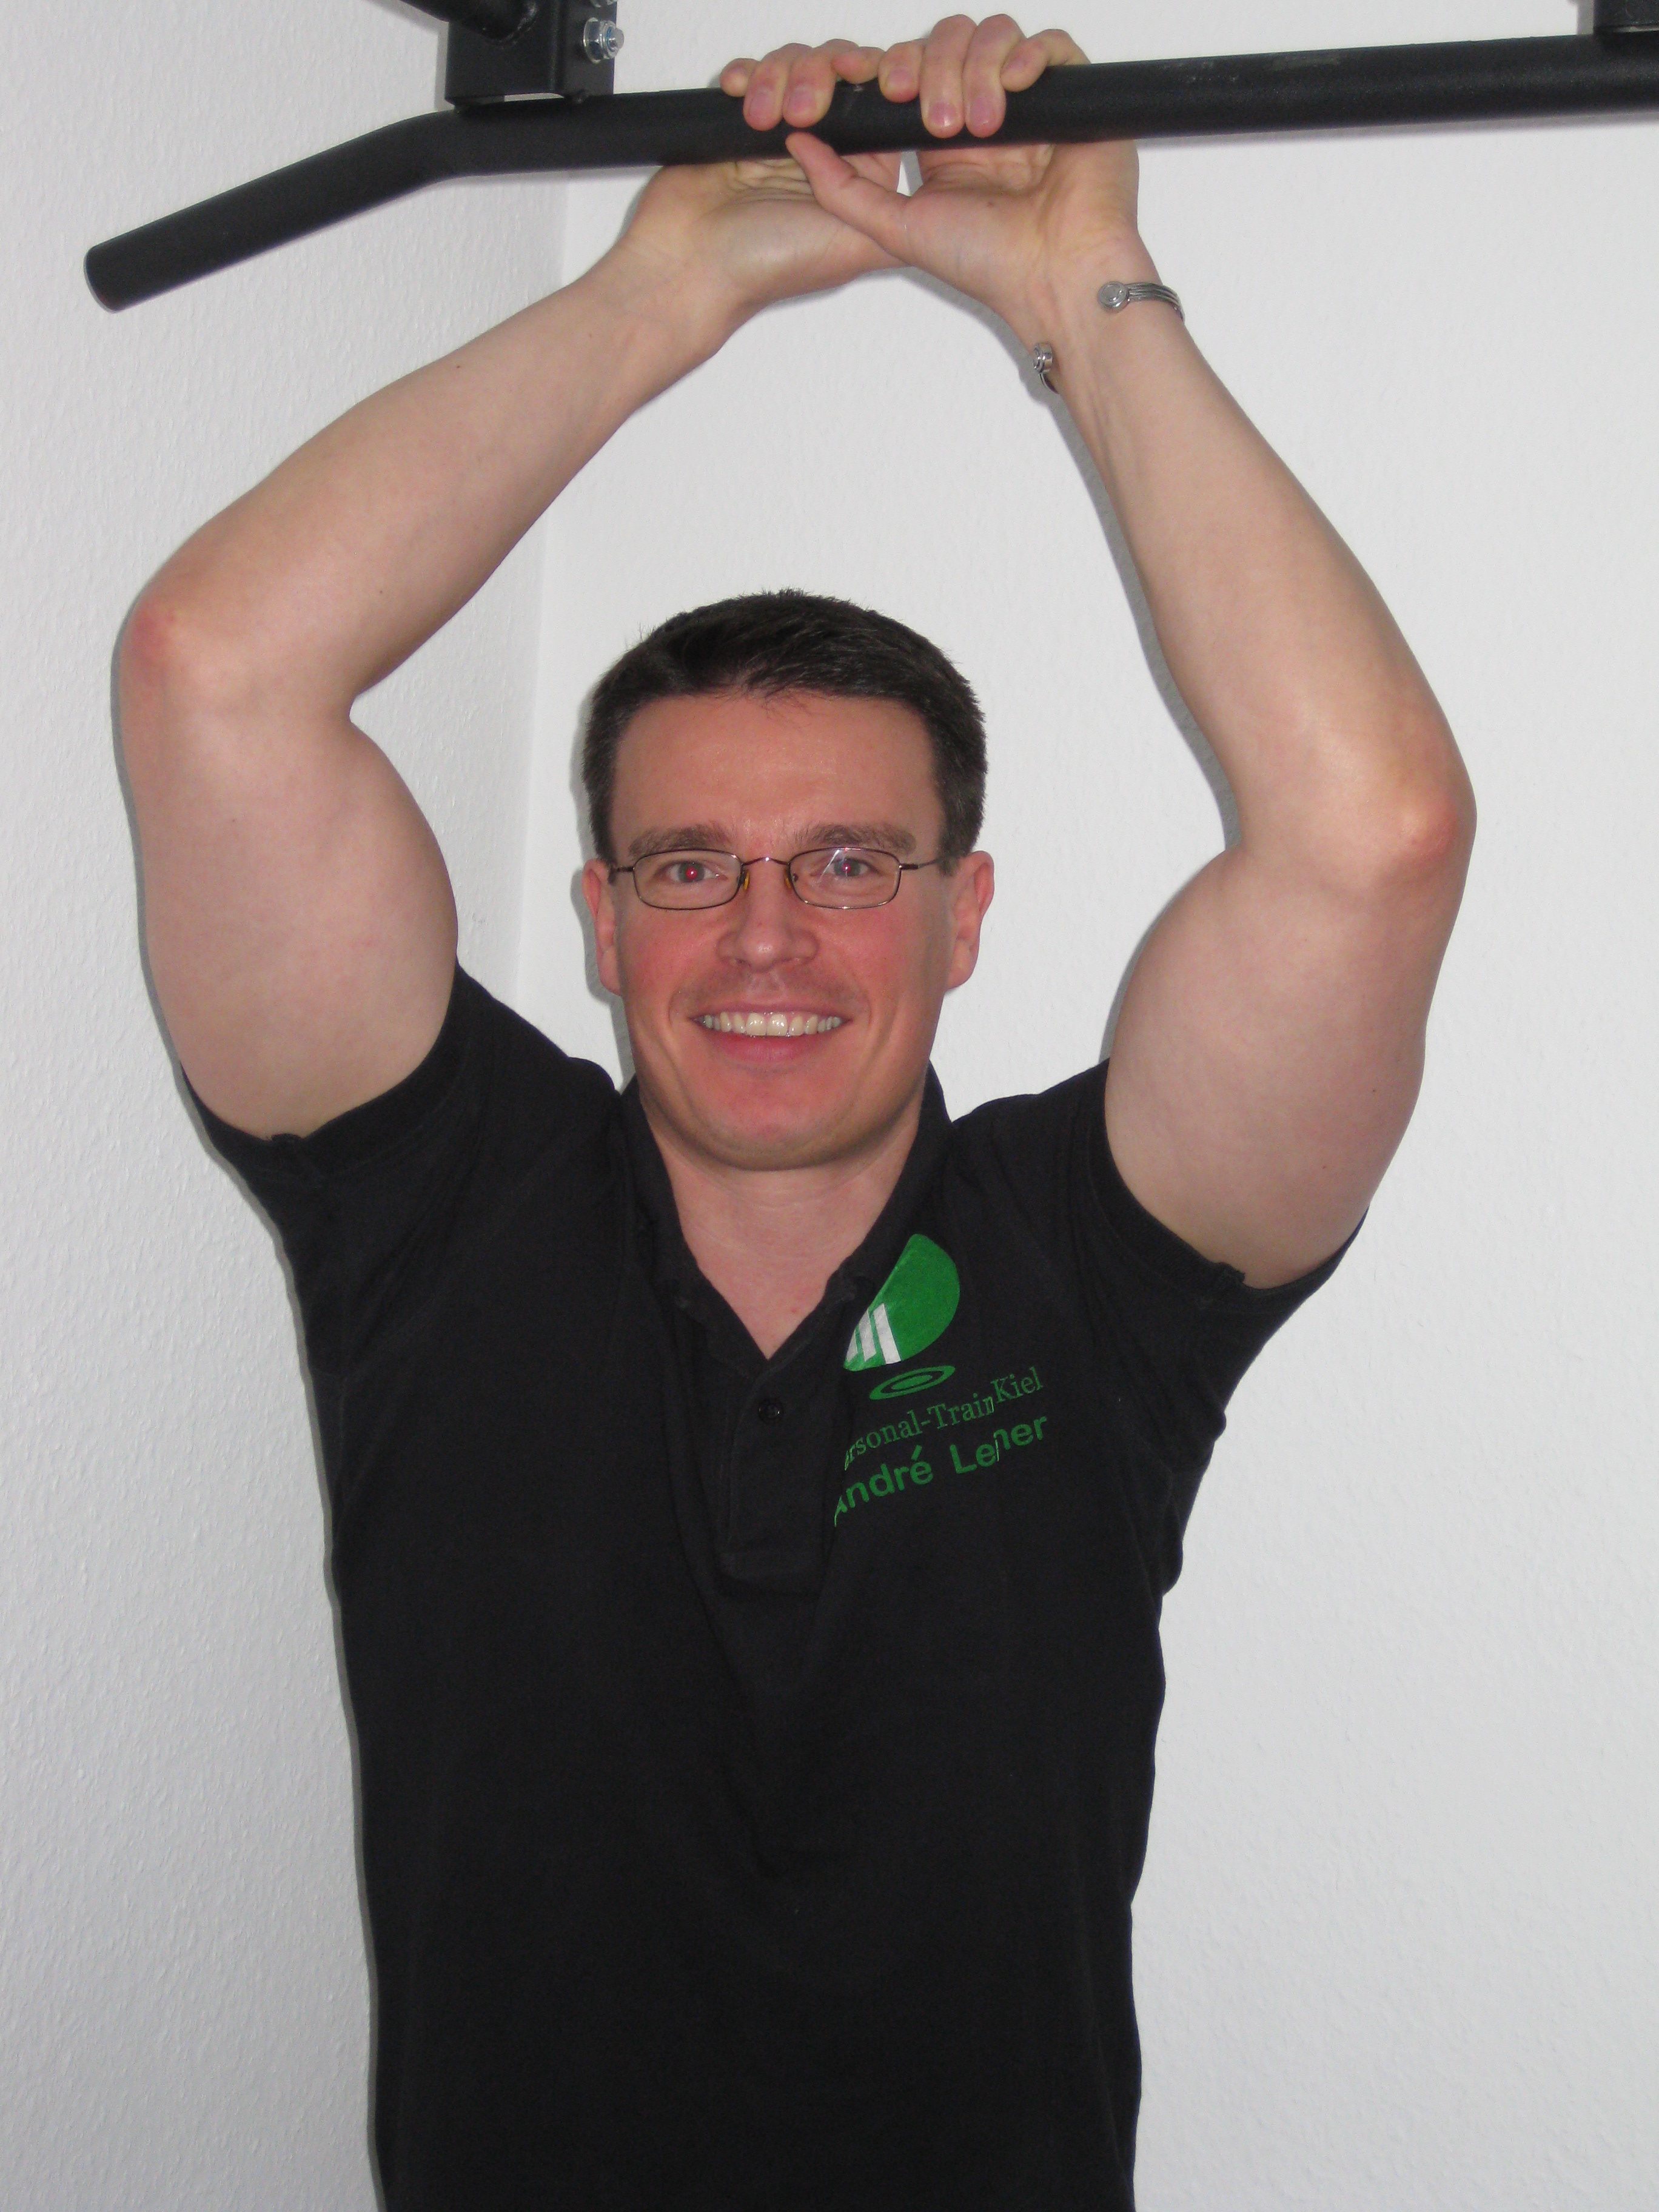 Andre Leisner - Personal Trainer